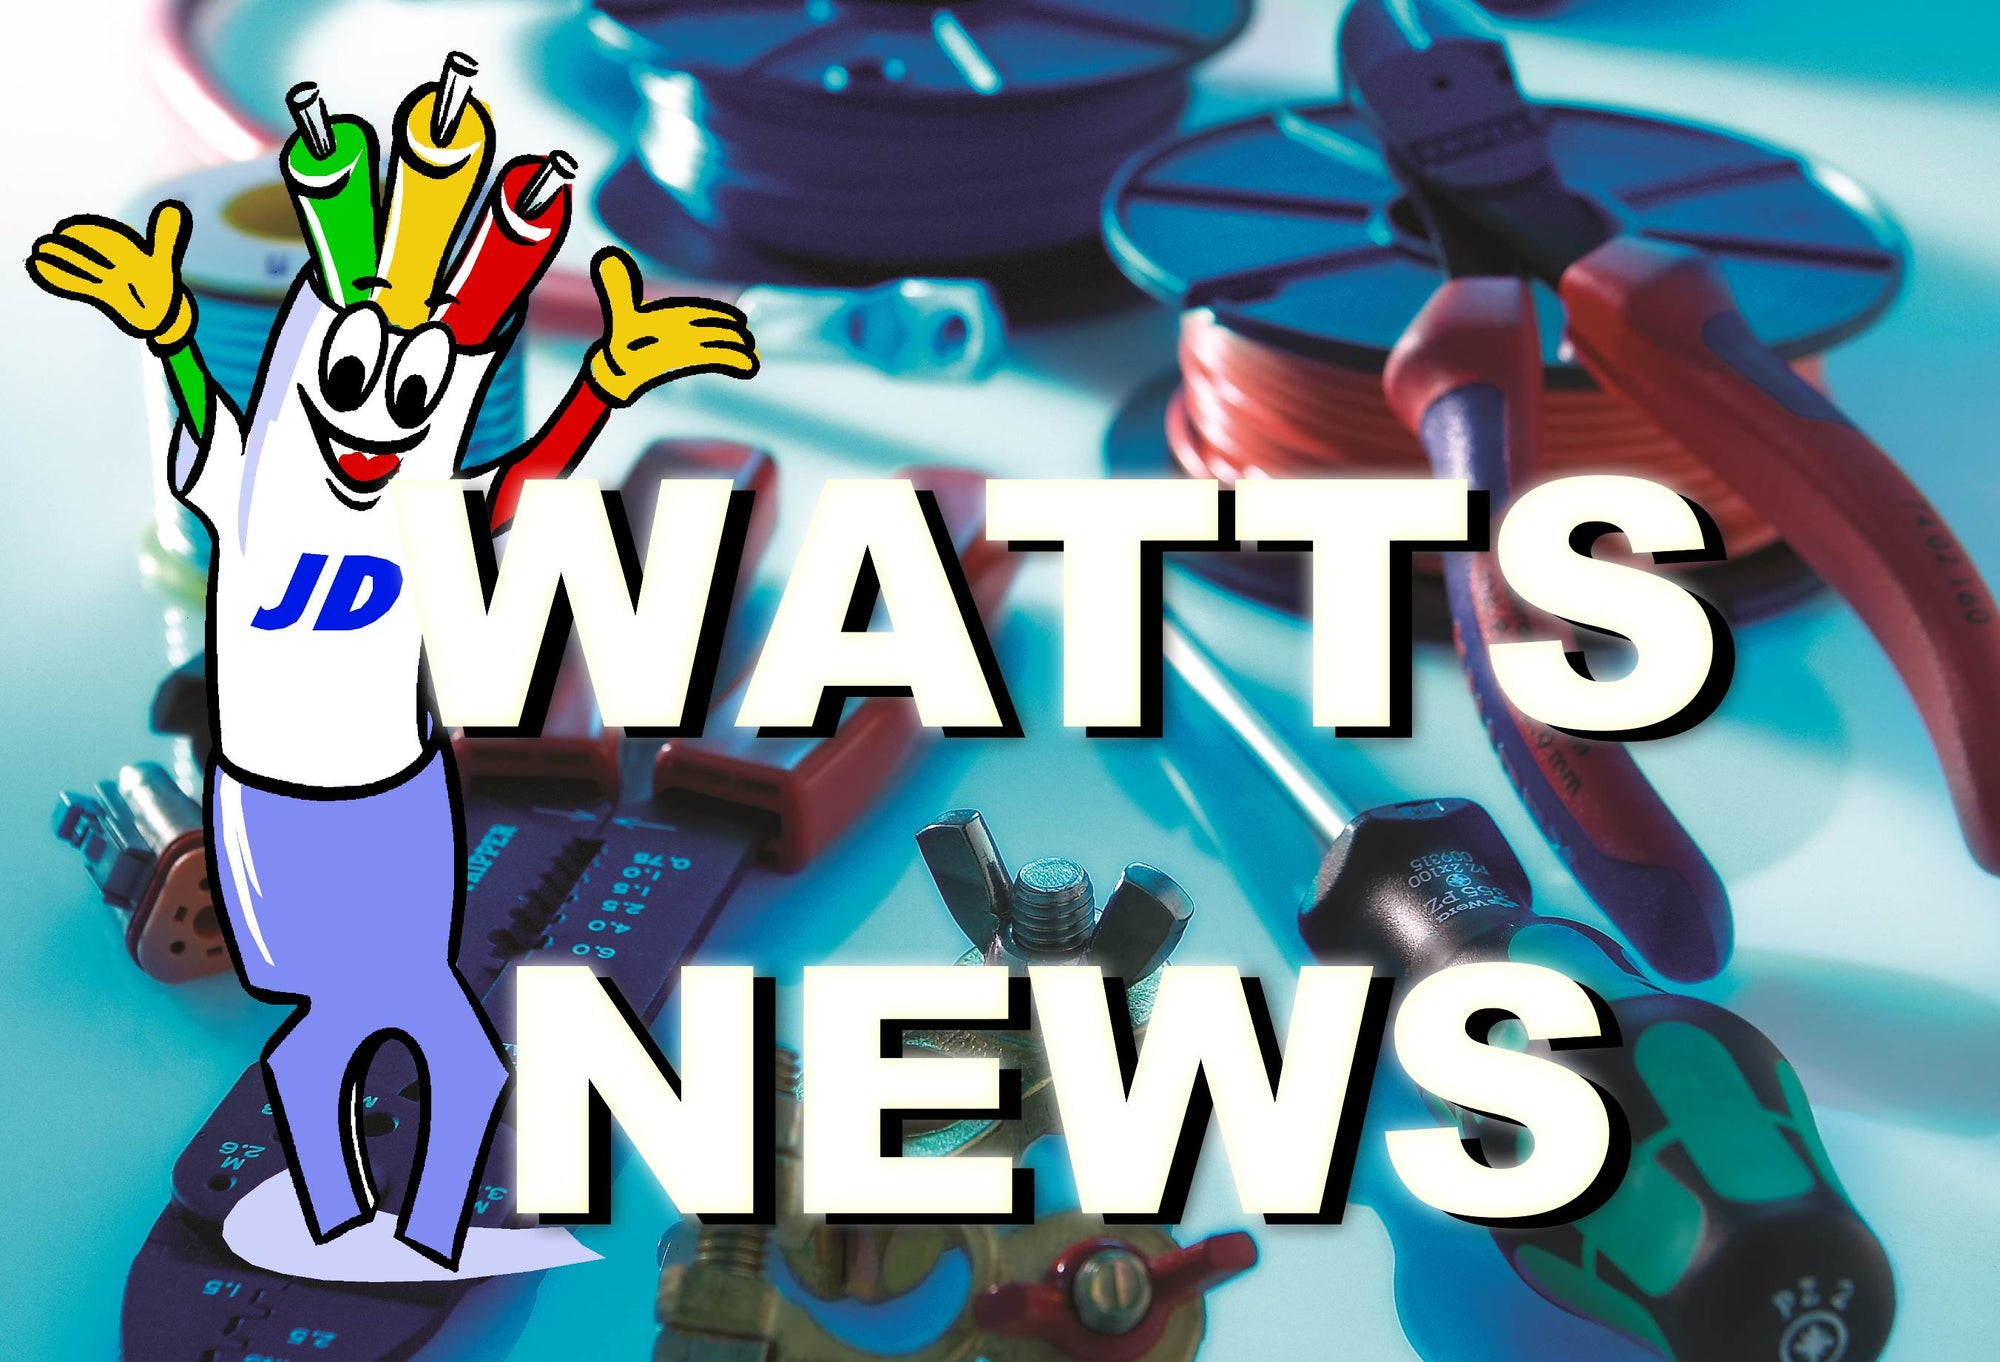 Watts News - December 2017